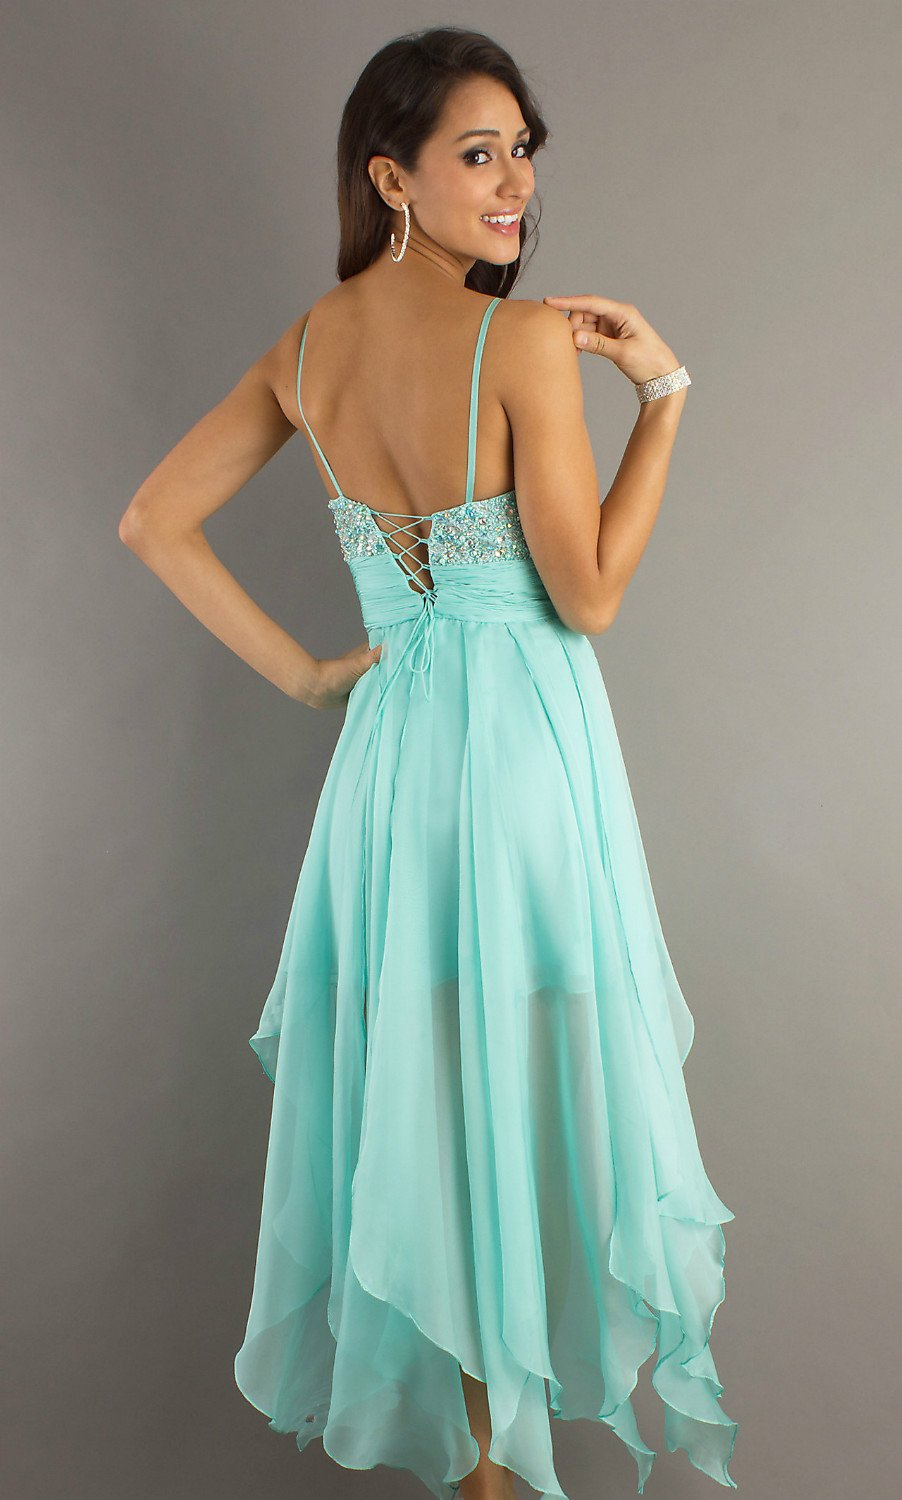 c93fb73241 US $128.75 |Free Shipping Beaded Aqua Chiffon High Low Prom Dresses  Spaghetti Straps VY019-in Prom Dresses from Weddings & Events on  Aliexpress.com | ...